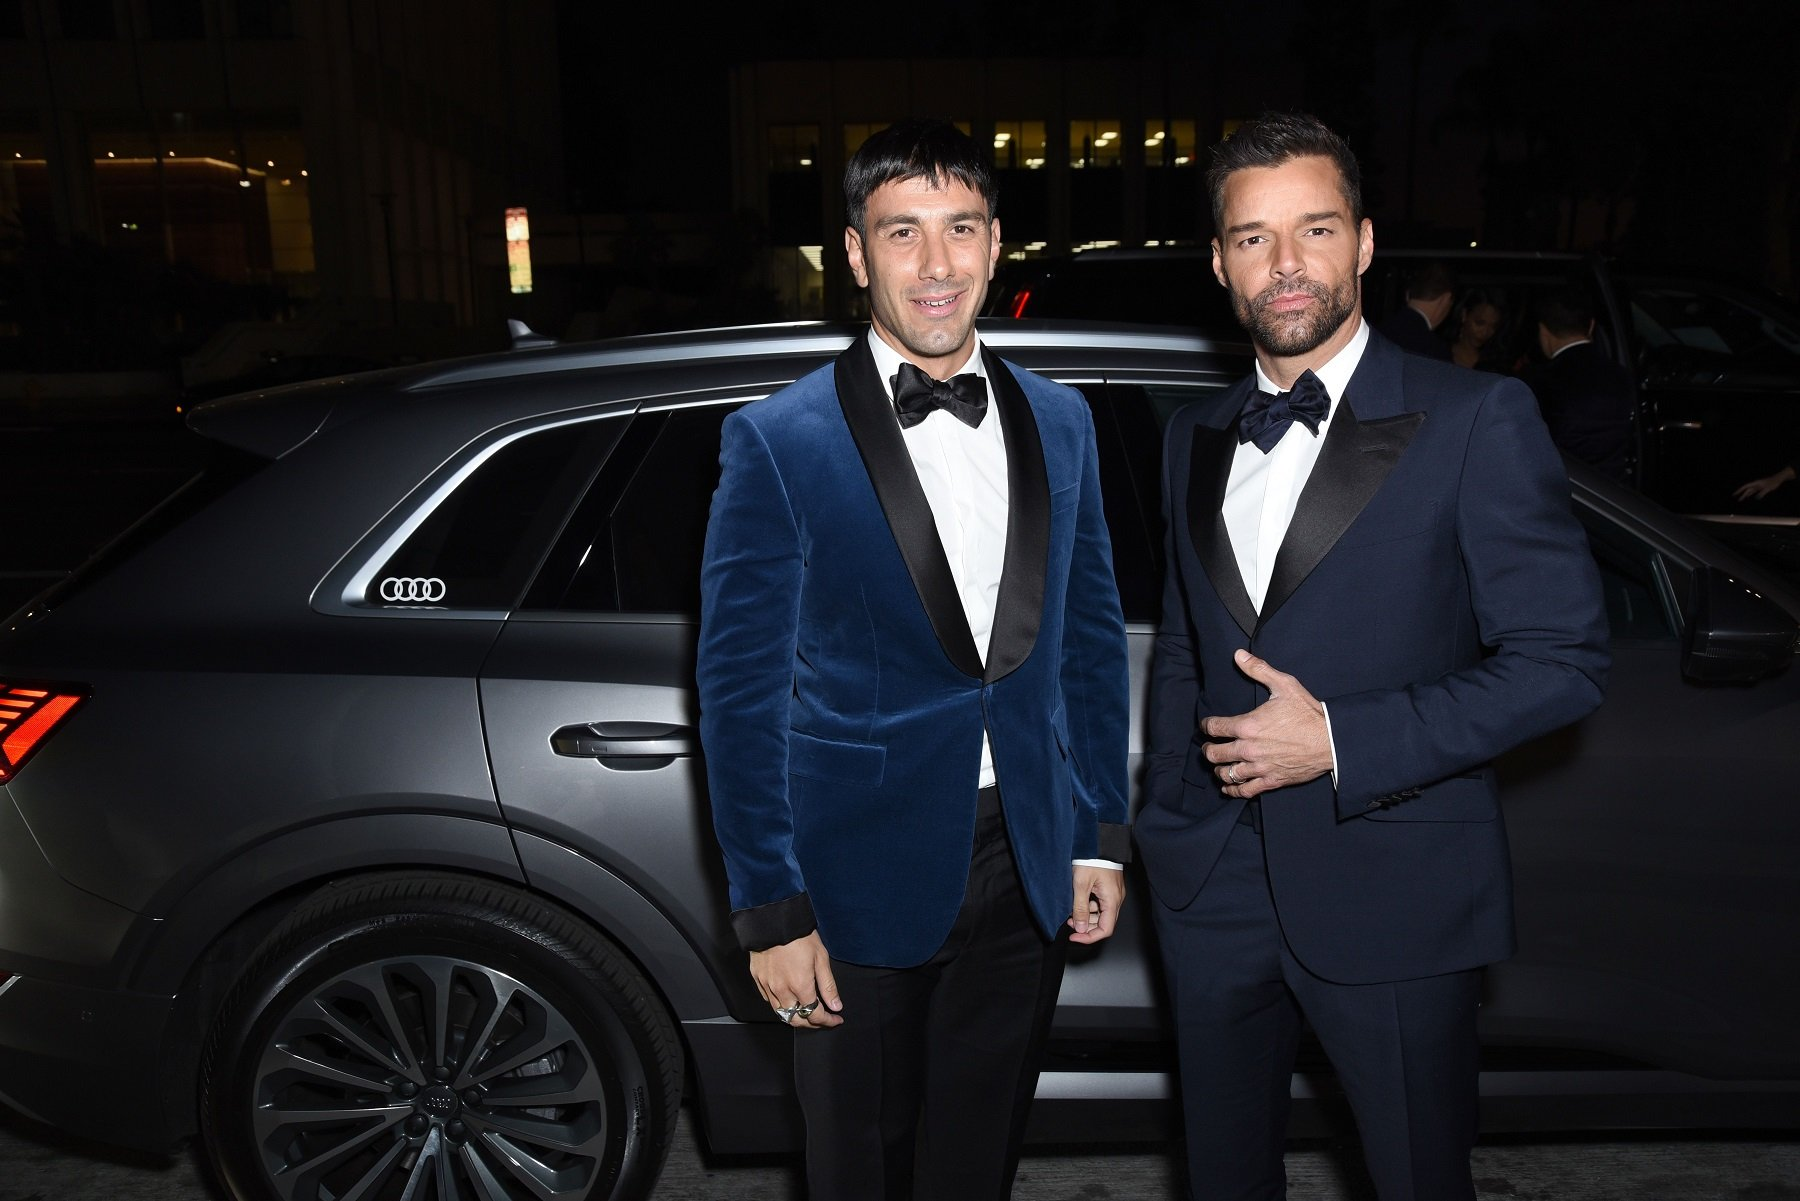 Jwan Yosef and Ricky Martin at the LACMA Art + Film Gala Presented By Gucci on November 02, 2019, in Los Angeles, California | Photo: Presley Ann/Getty Images